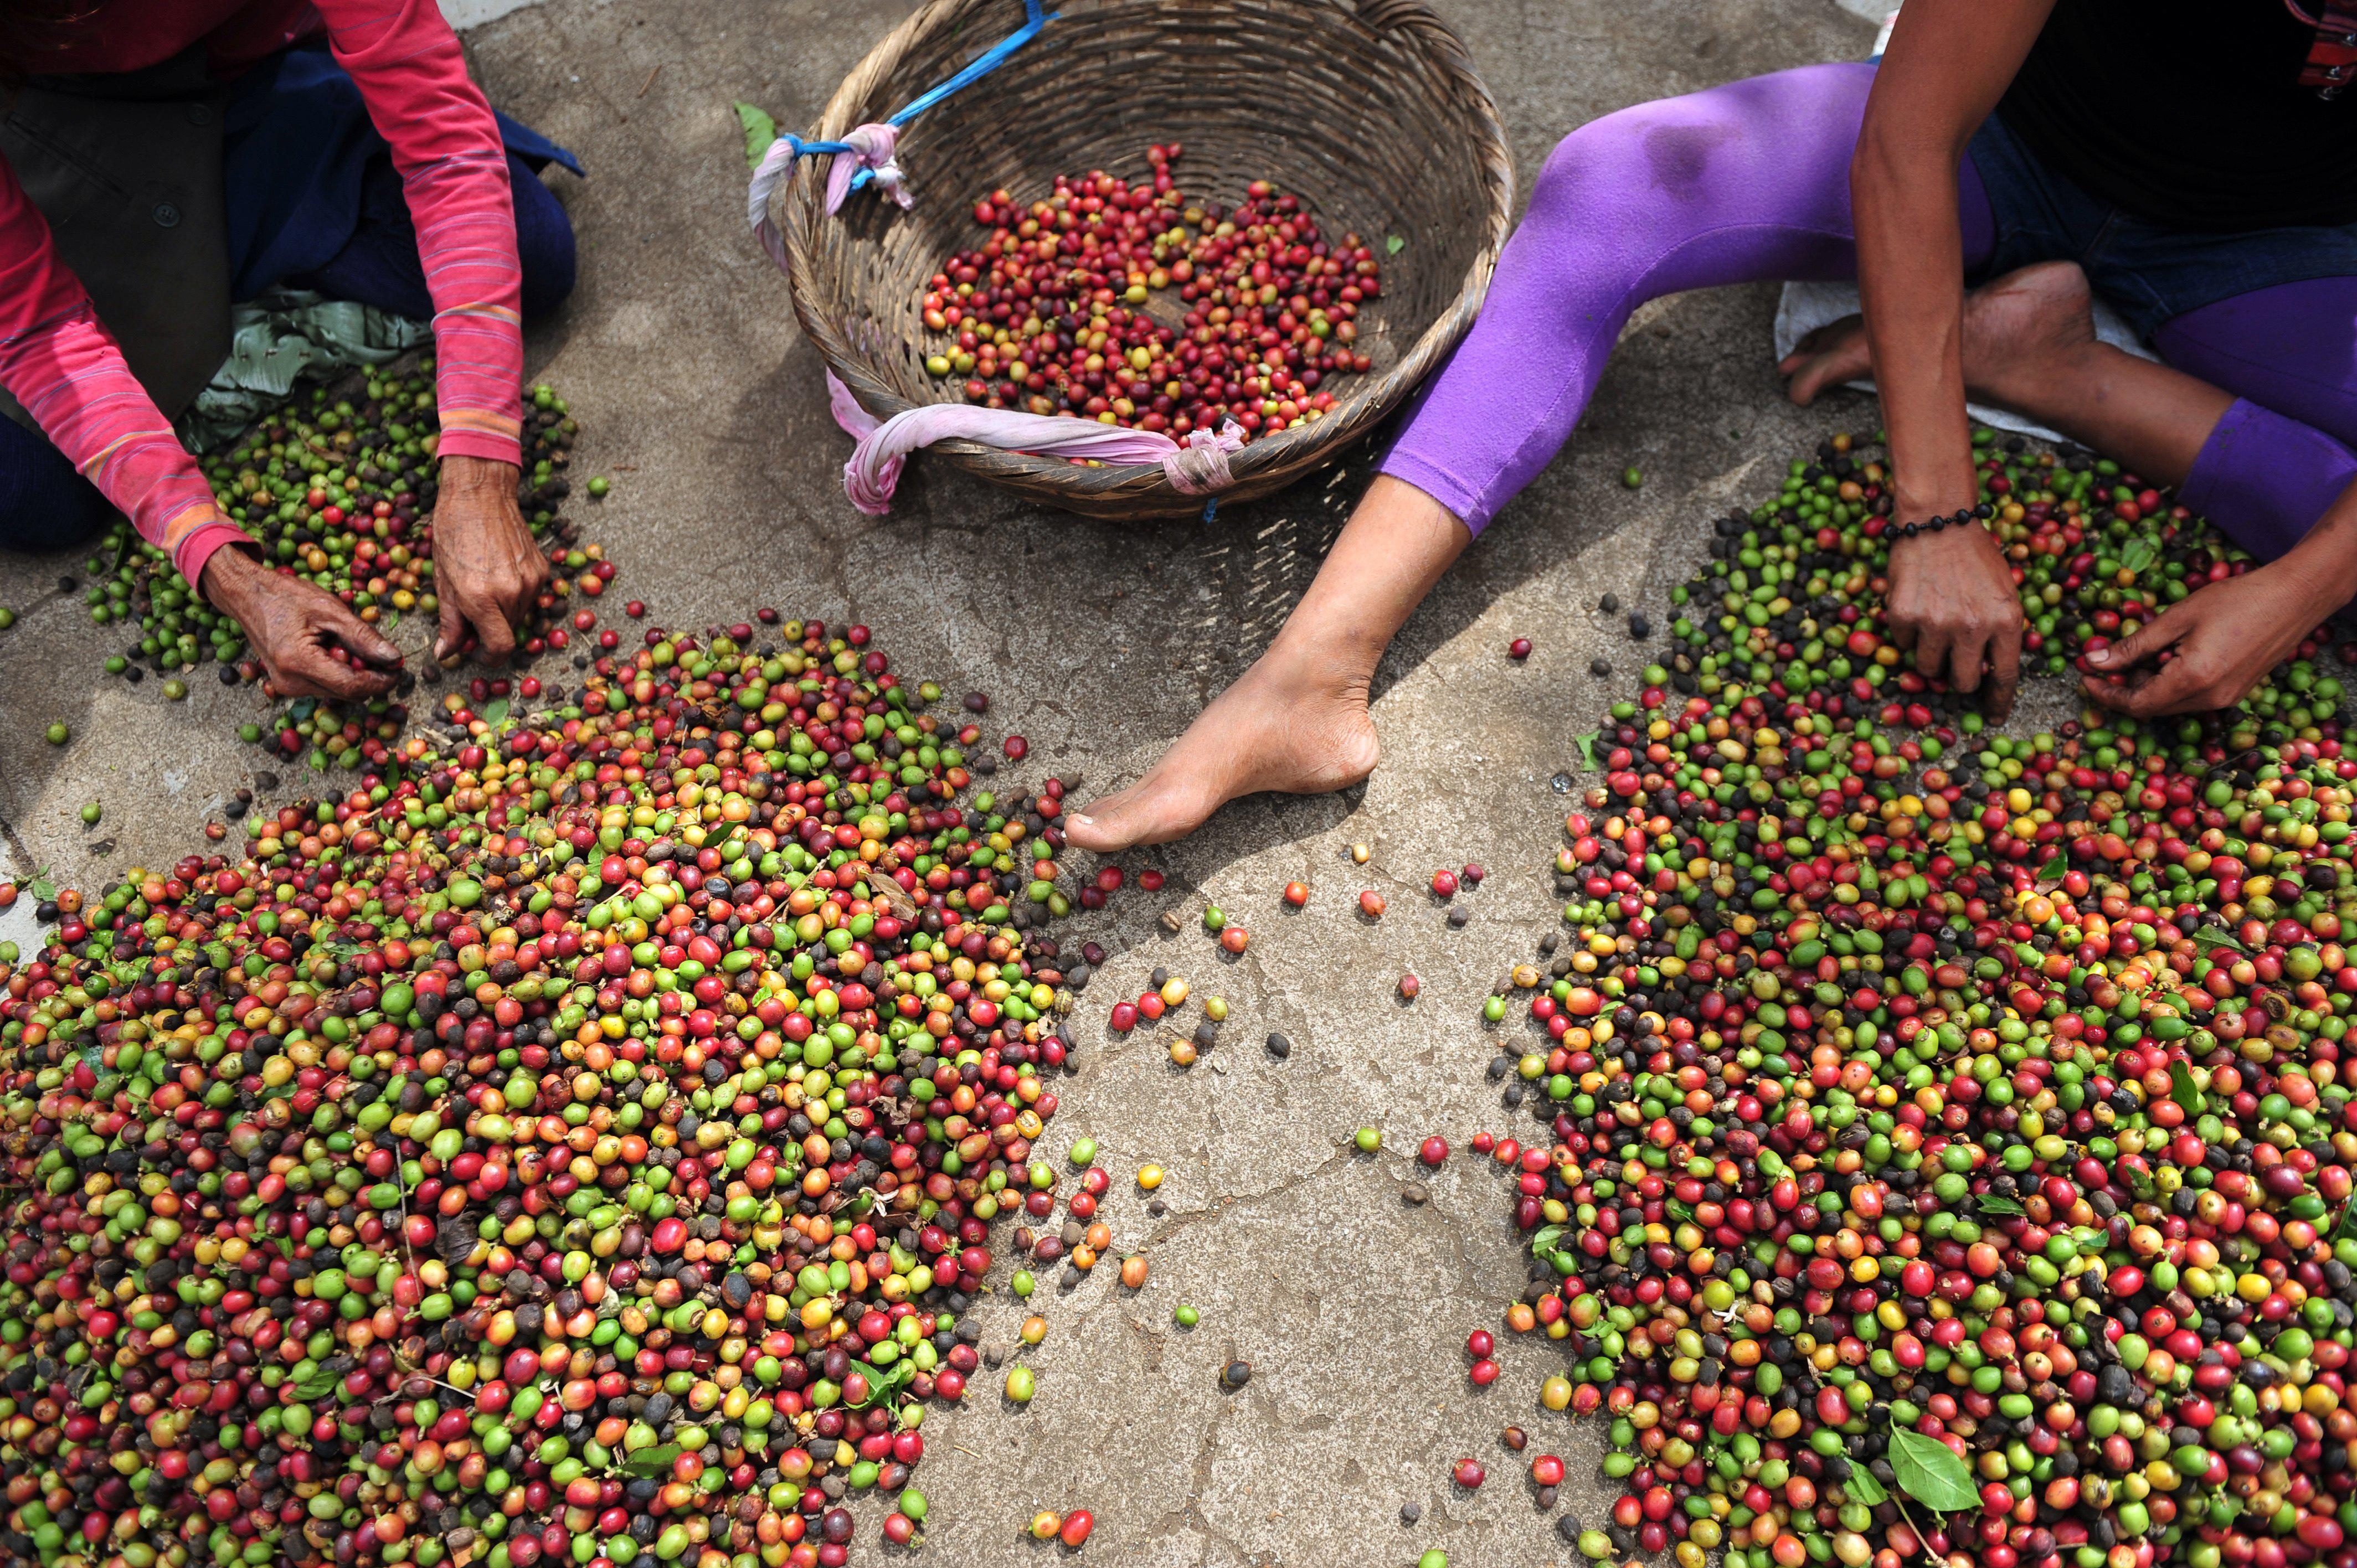 Toms gets into the coffee business: Americans love buying ethically sourced coffee.